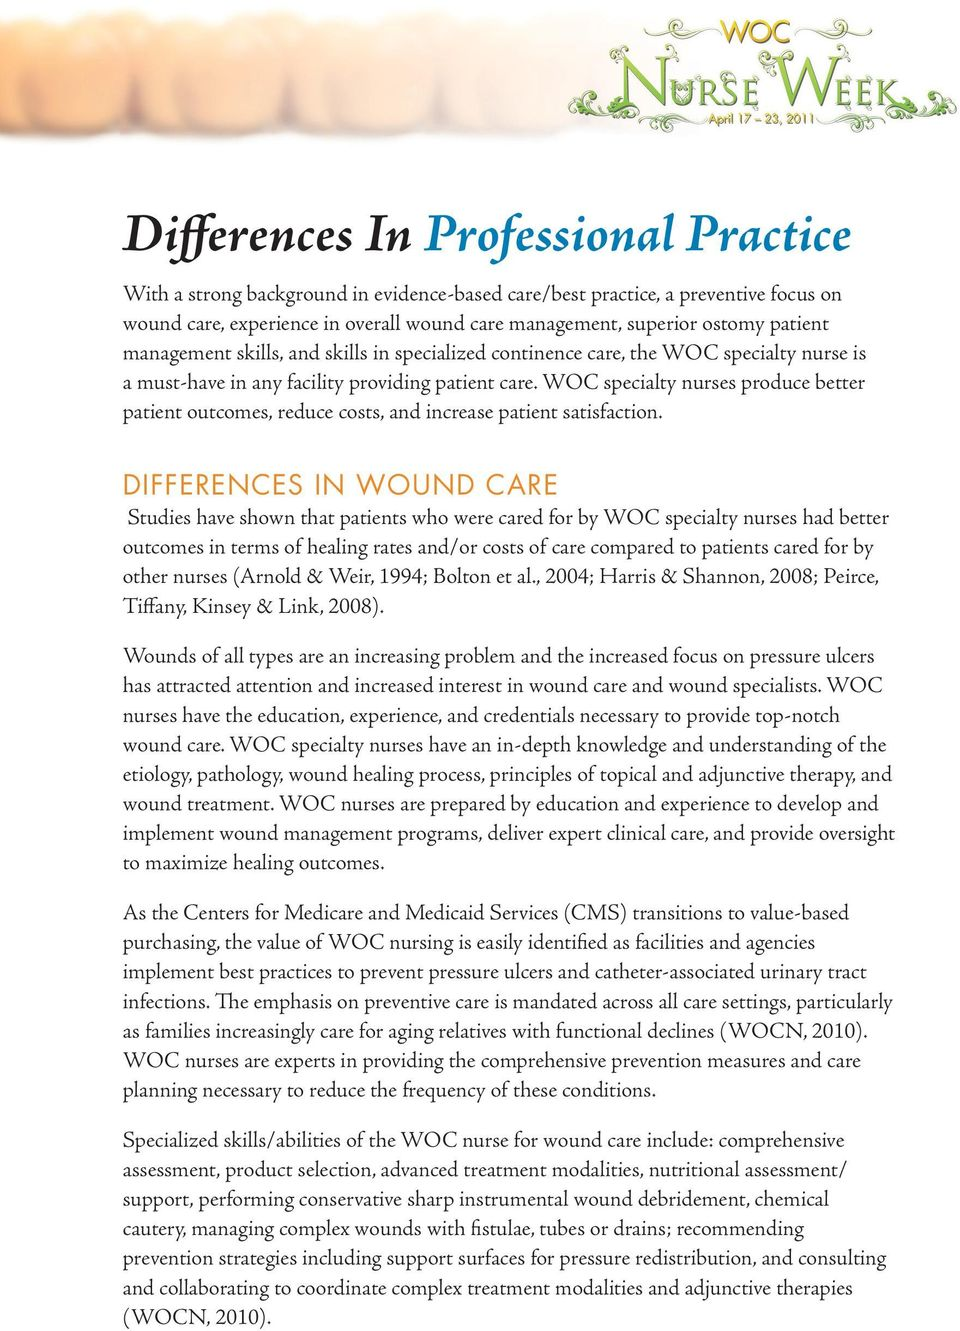 WOC specialty nurses produce better patient outcomes, reduce costs, and increase patient satisfaction.